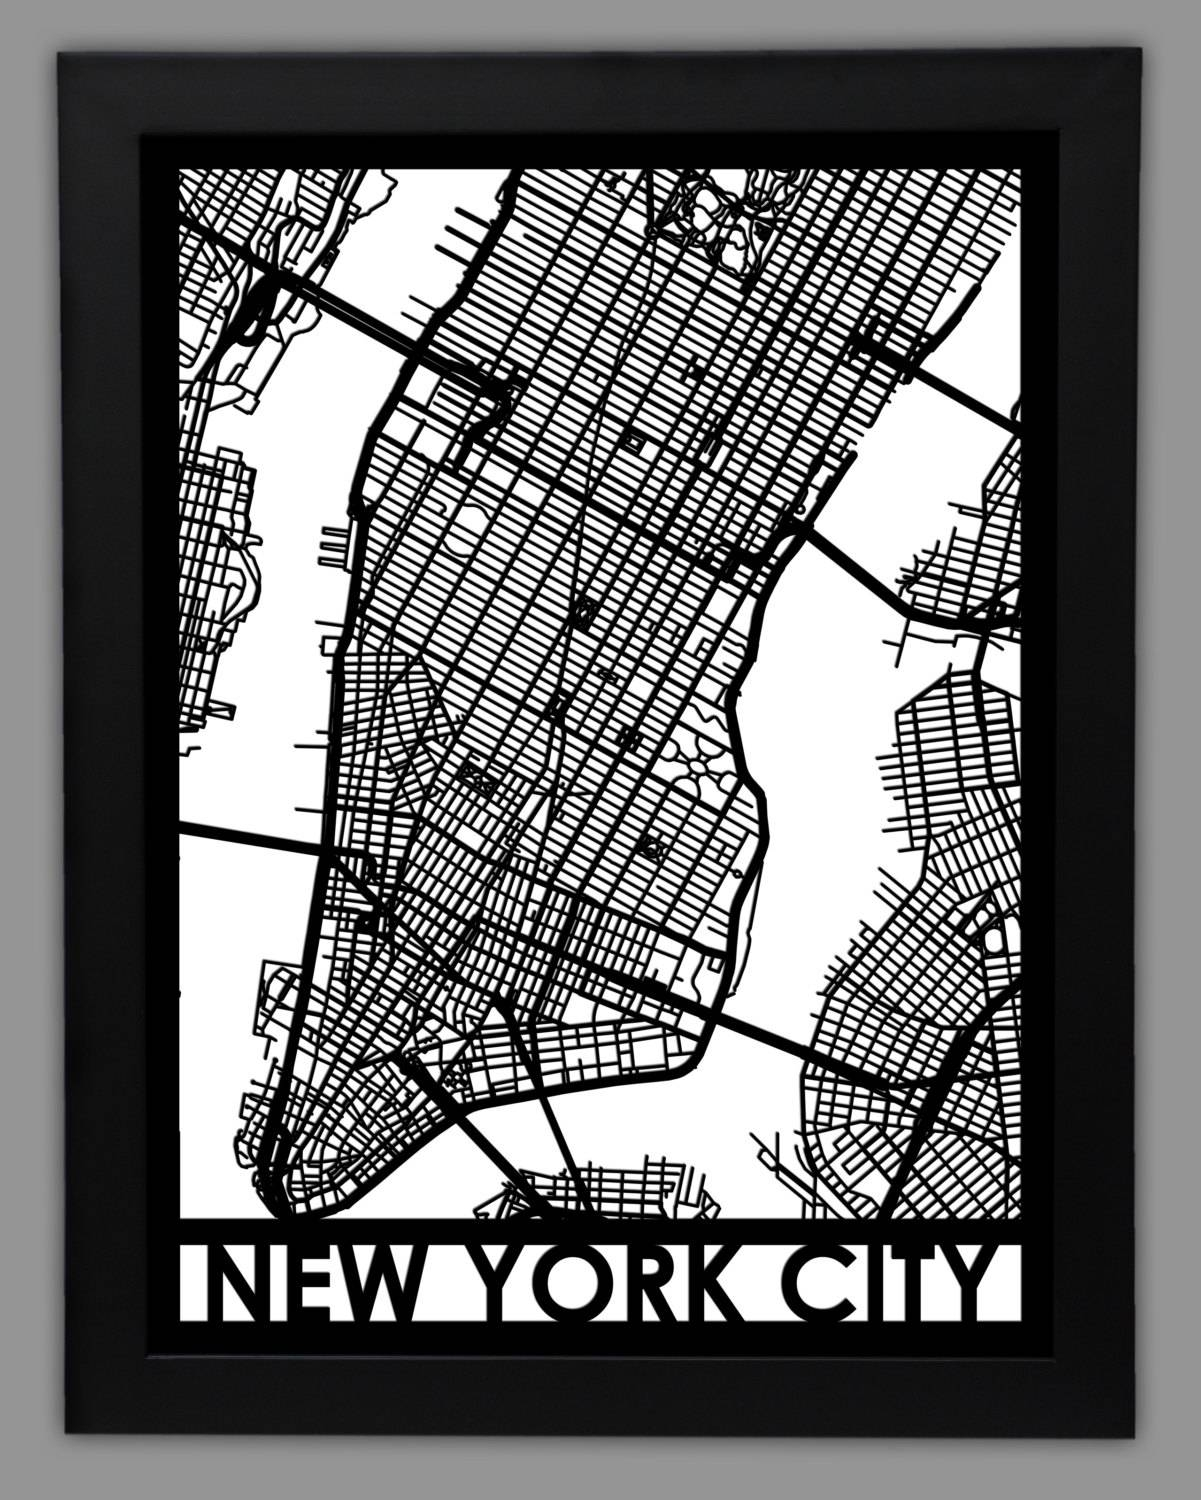 New York City Laser Cut Map 18X24 Framed City Map pertaining to Most Popular City Map Wall Art